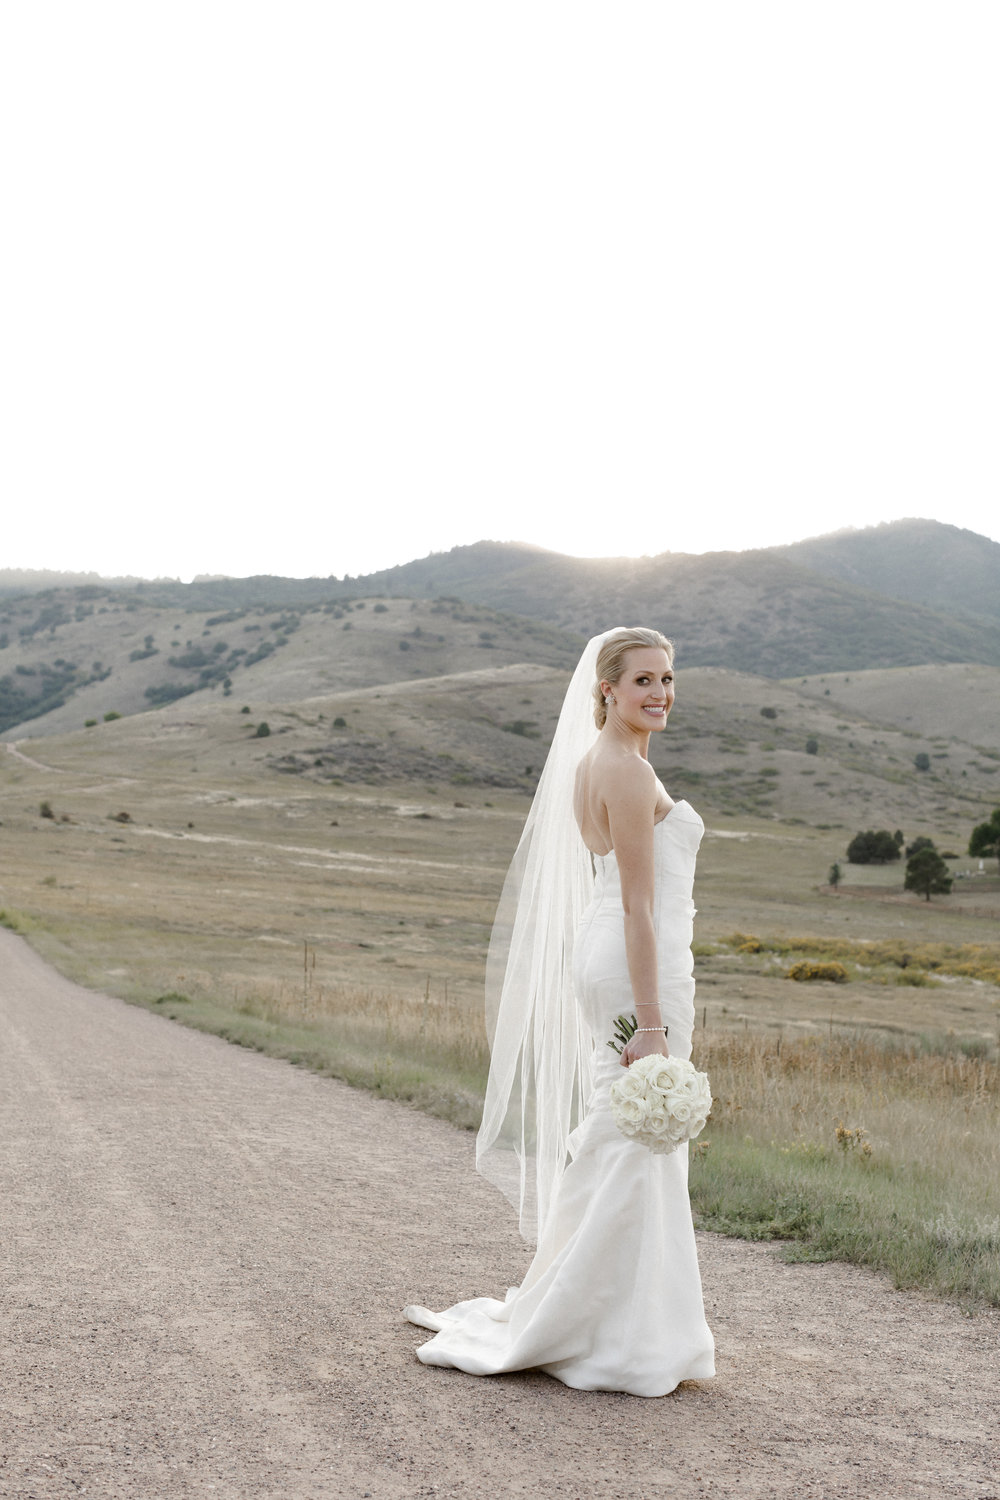 Hailley+Howard_Colorado+Wedding_The+Manor+House-437.jpg